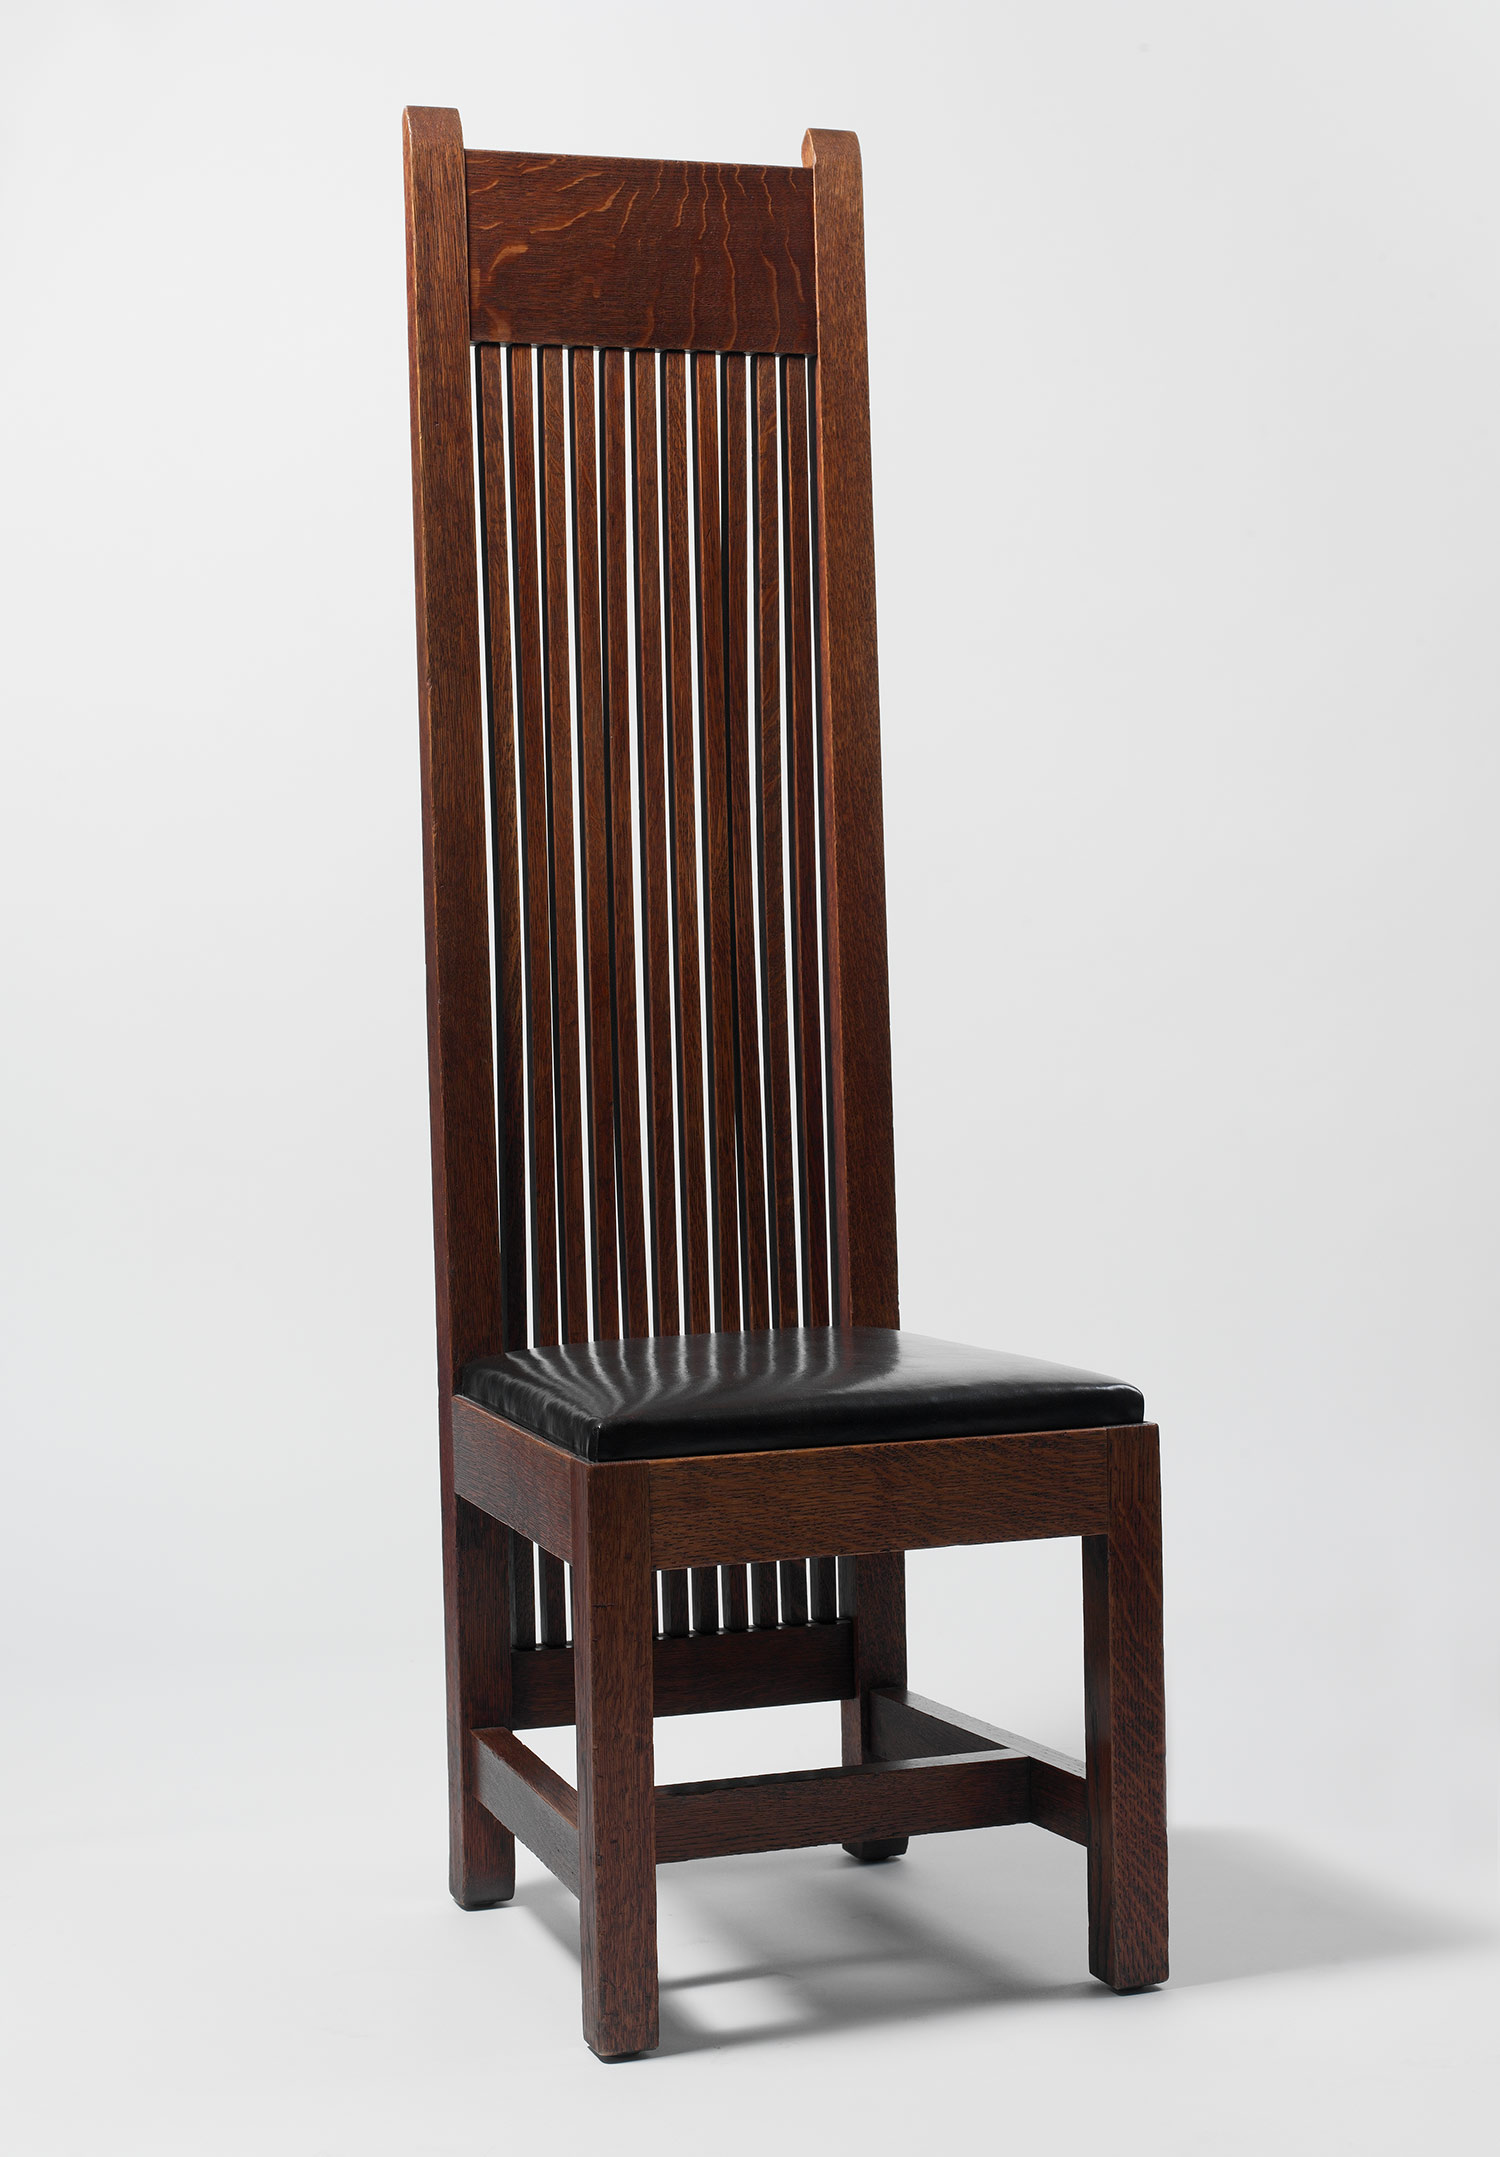 frank lloyd wright chairs savannah's chair cover rentals & events honolulu hi see my blog willits